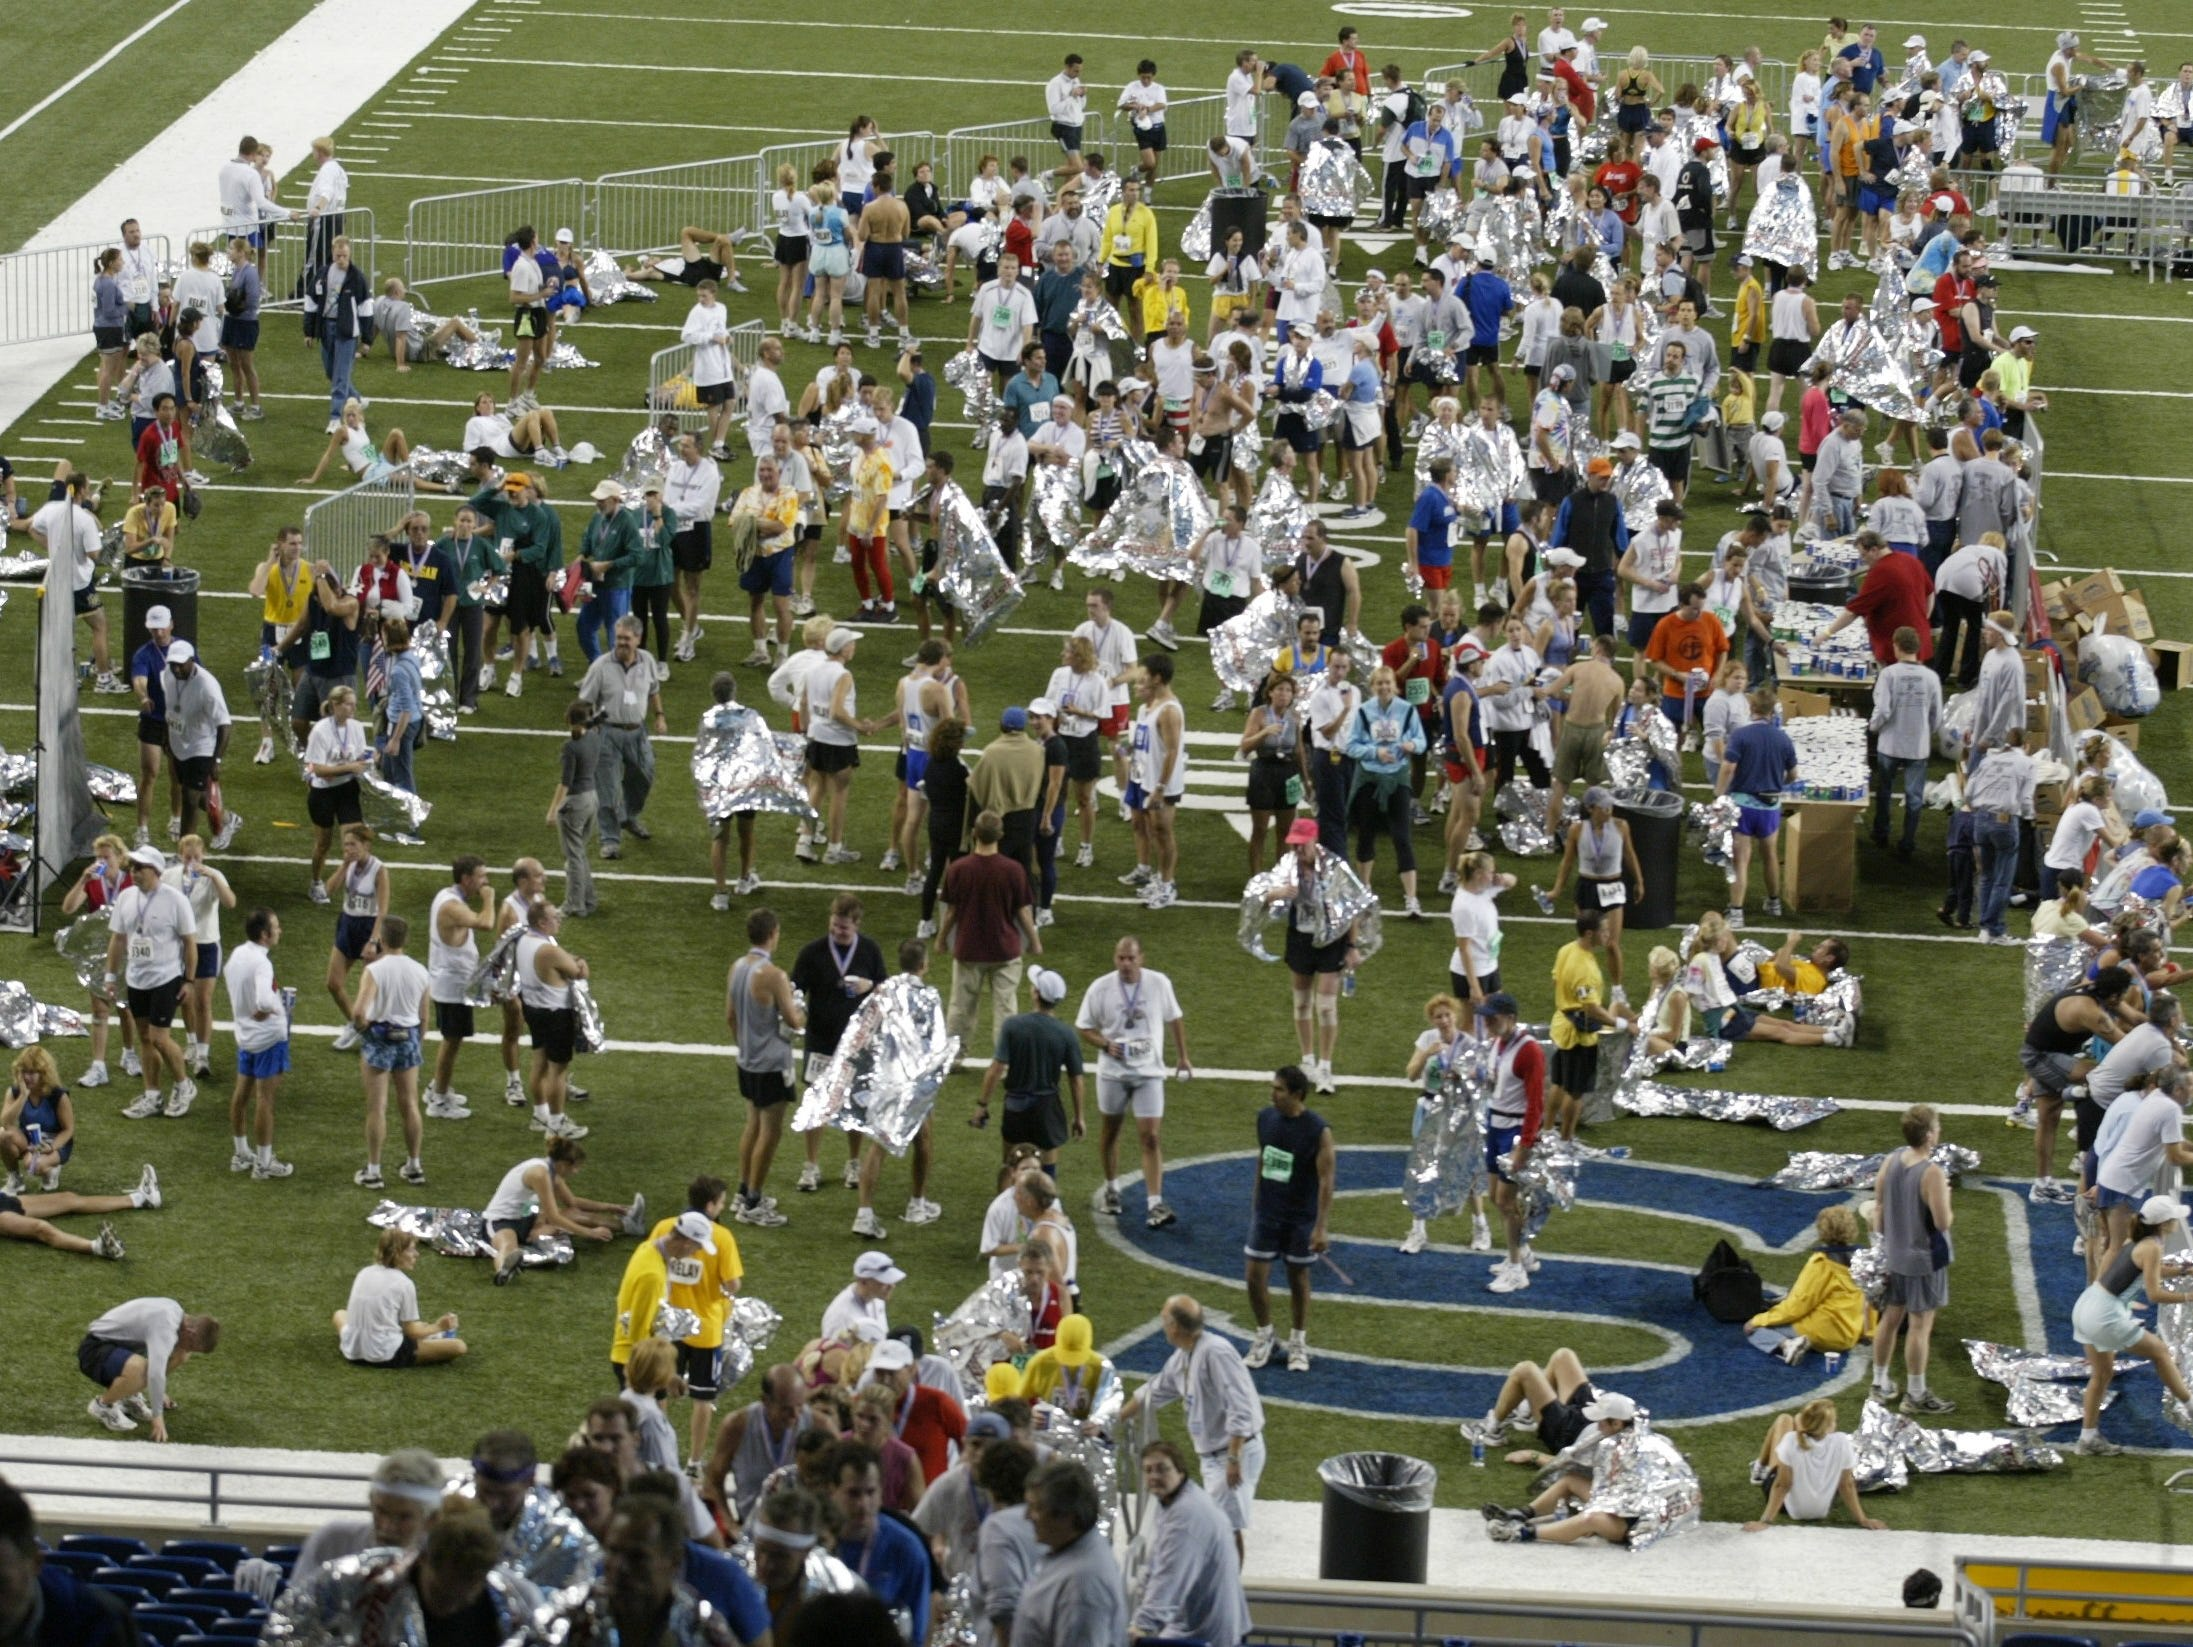 Detroit Free Press/Flagstar Bank Marathon runners cool down after finishing the race inside Ford Field on Sun Oct 5, 2002.